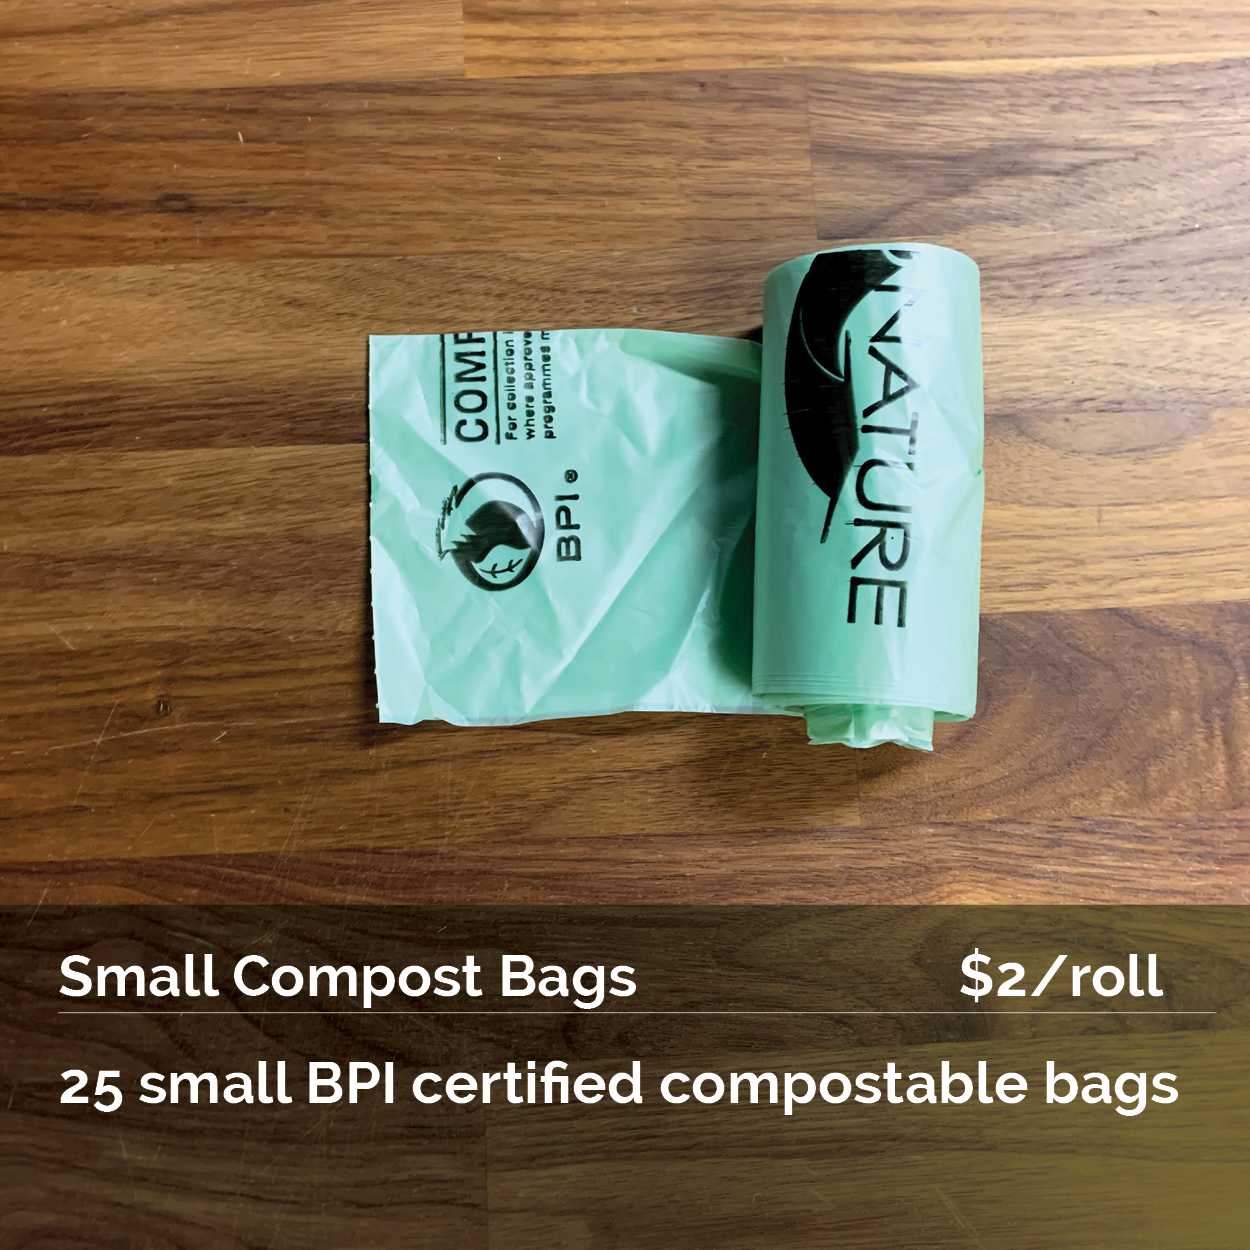 Small Compost Bags